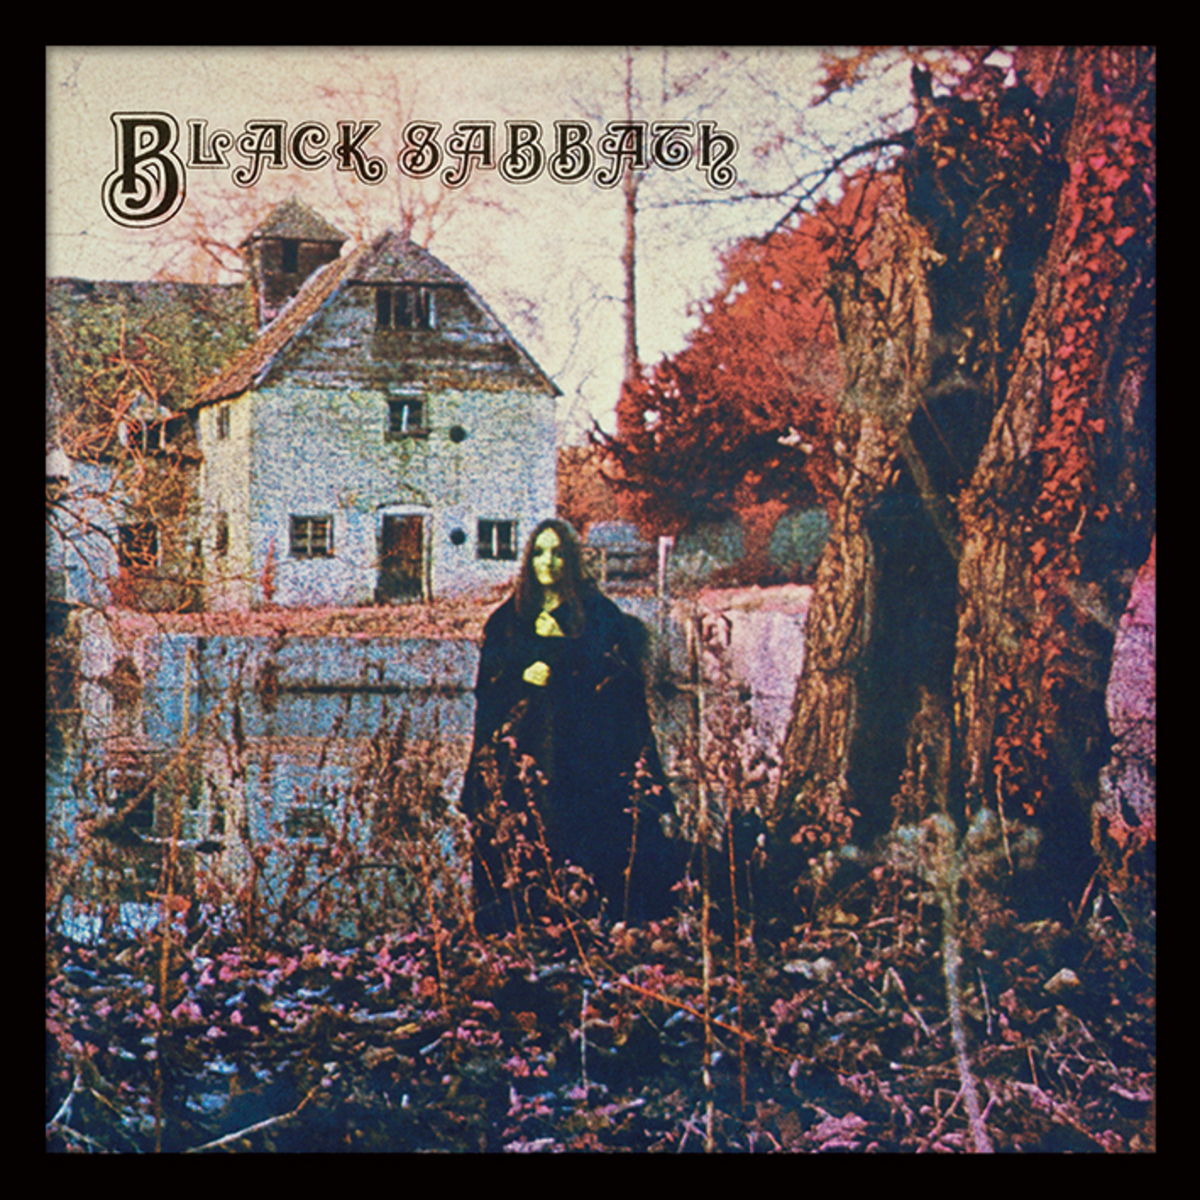 obraz Black Sabbath - (Black Sabbath) - PYRAMID POSTERS - ACPPR48032